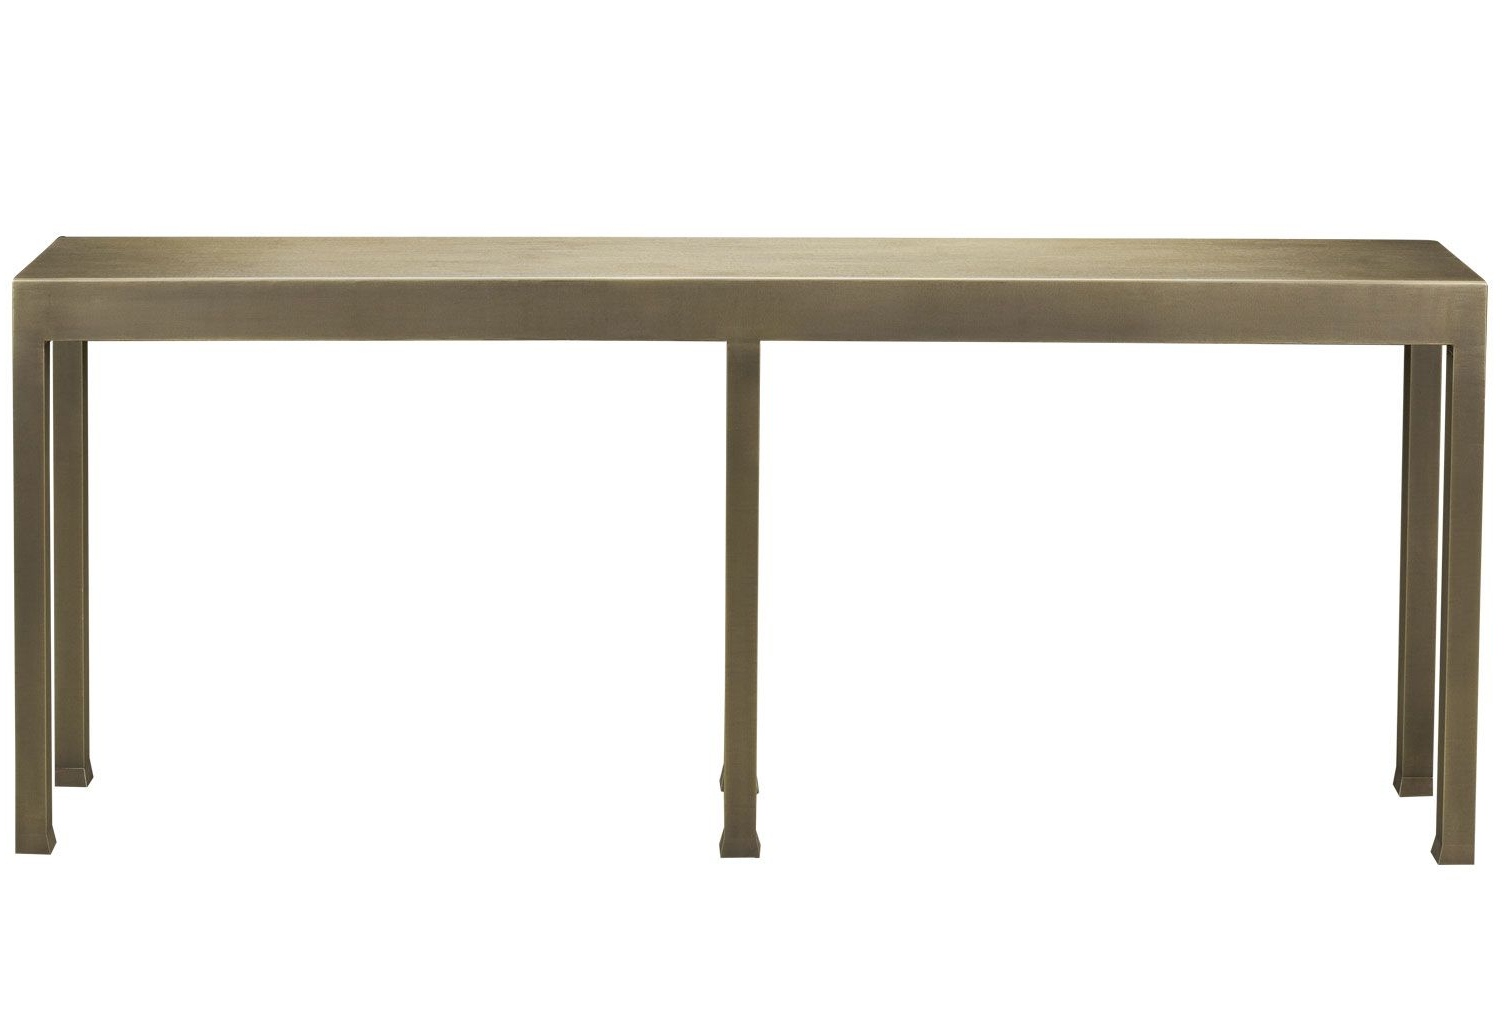 Gong Consolepromemoria – Switch Modern Throughout Switch Console Tables (View 11 of 20)